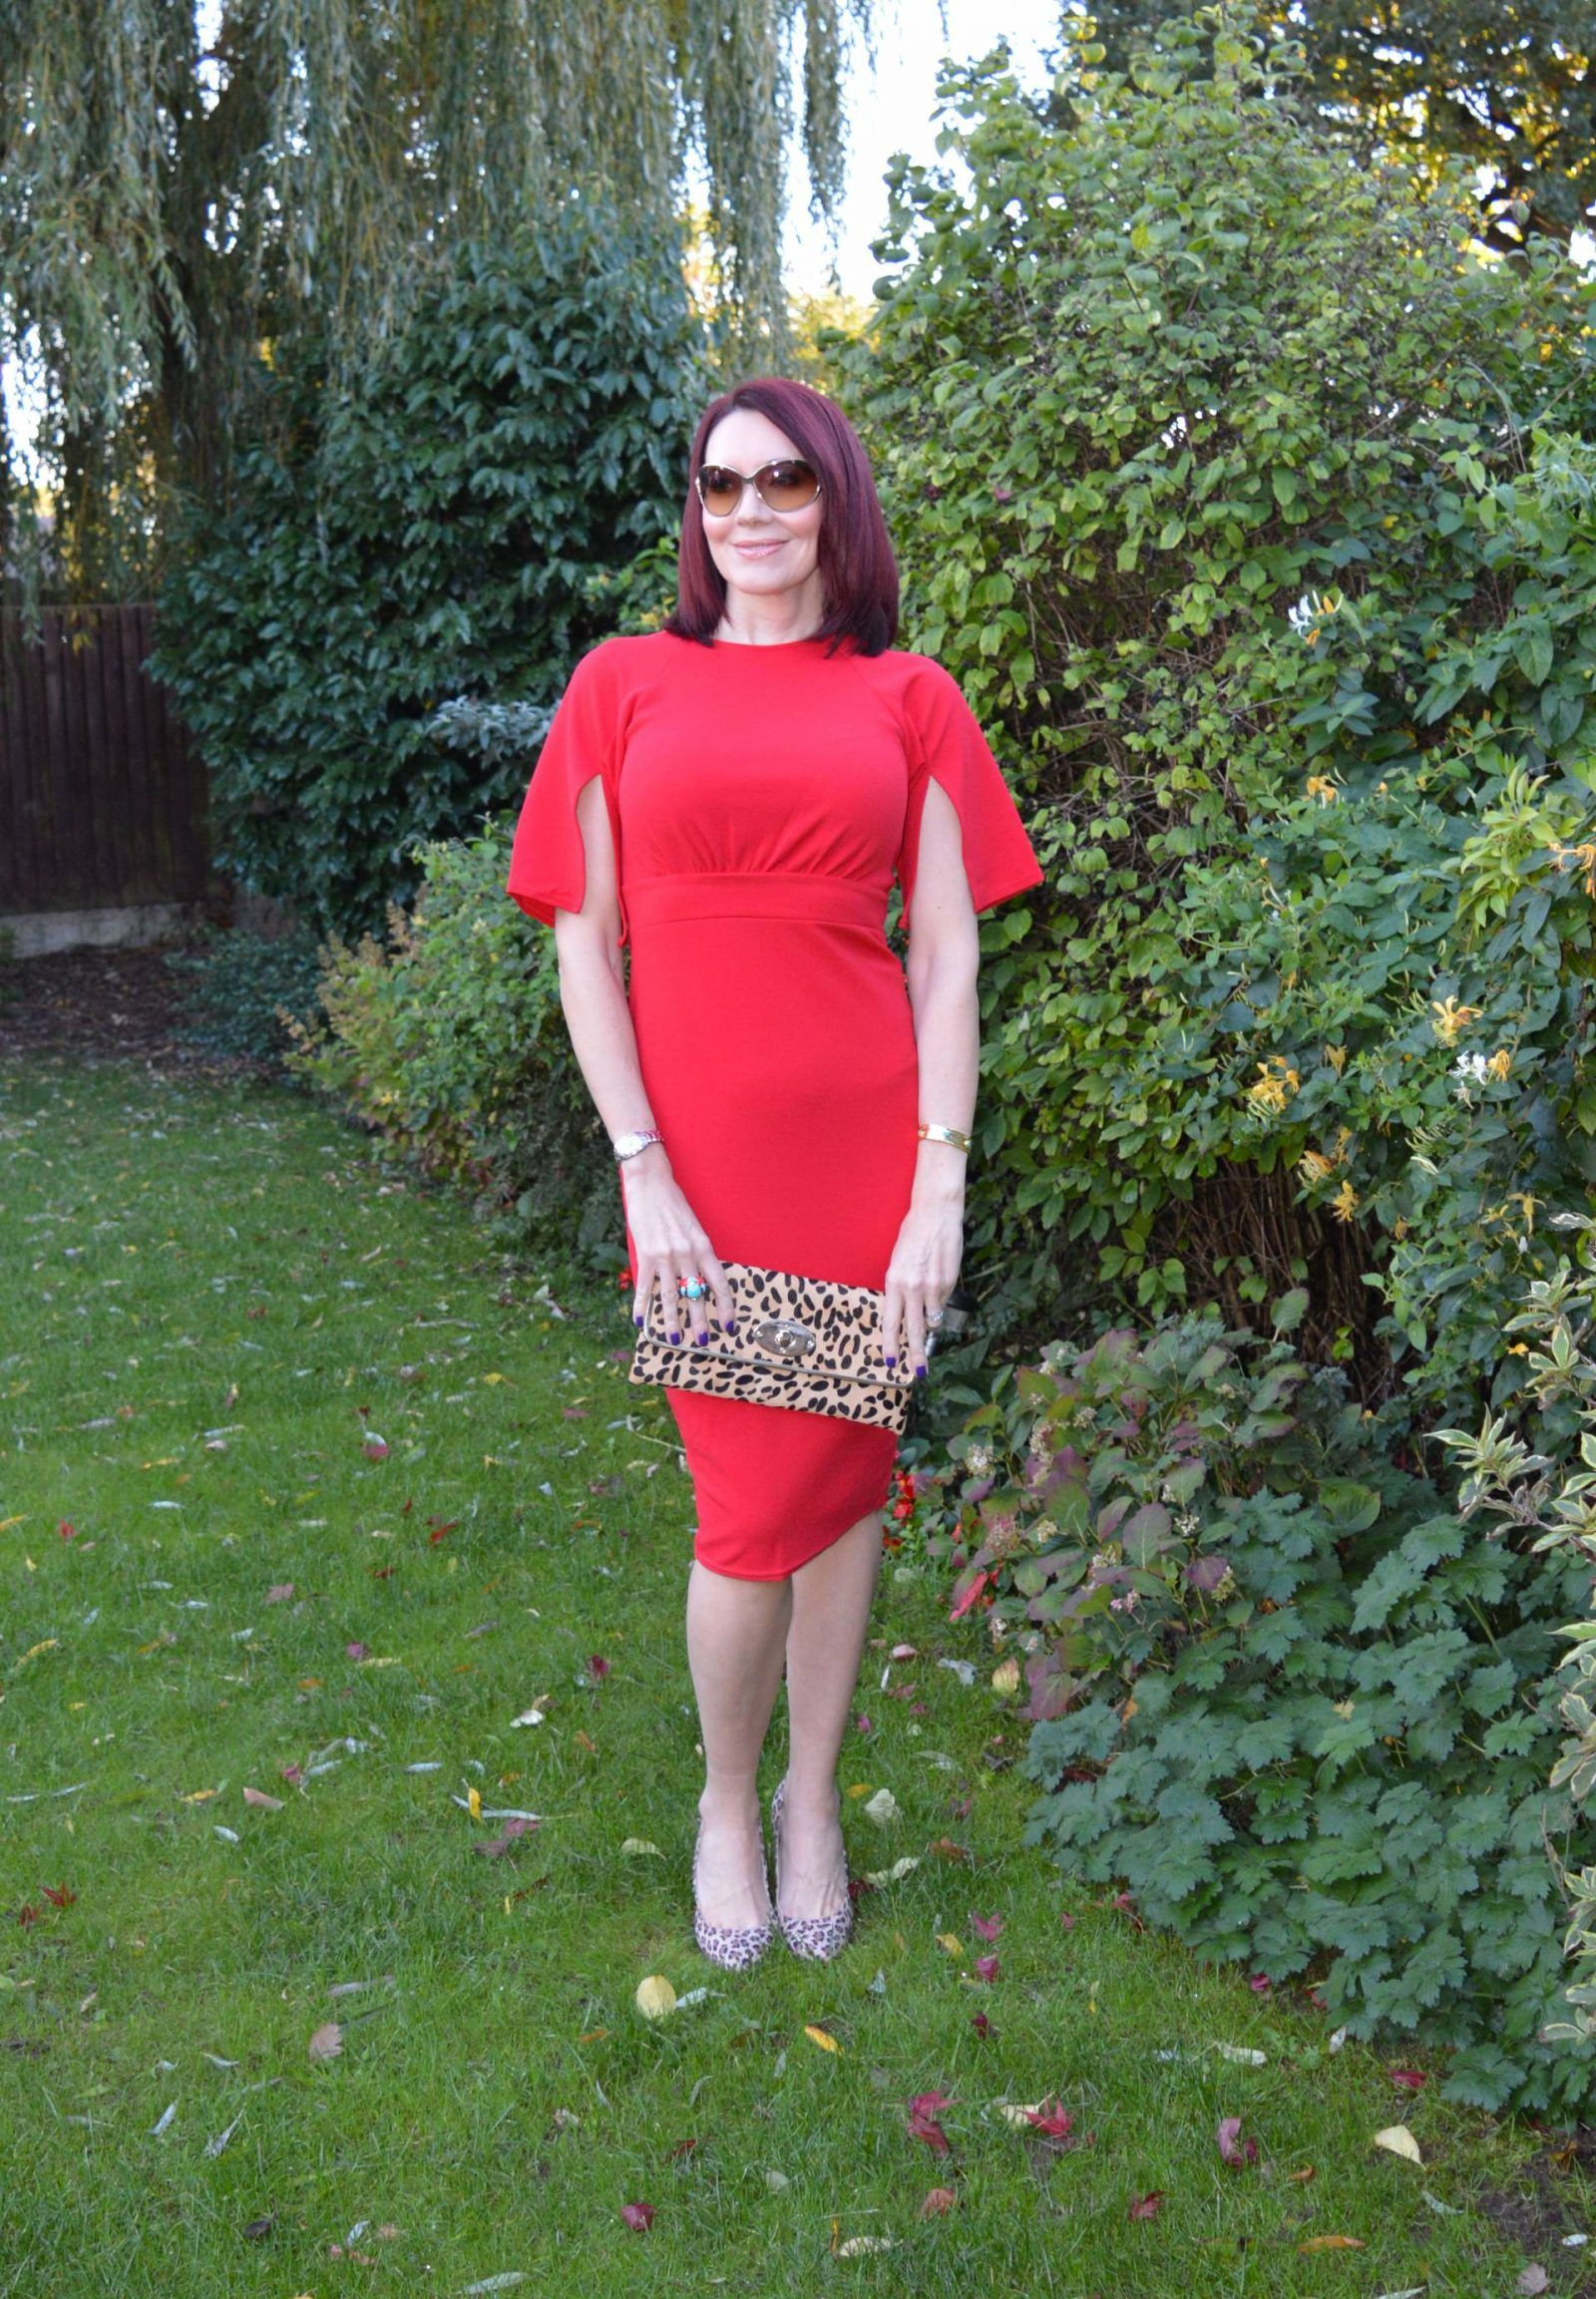 ba909798e57 Red dress with leopard print accessories + link up   Emma Peach